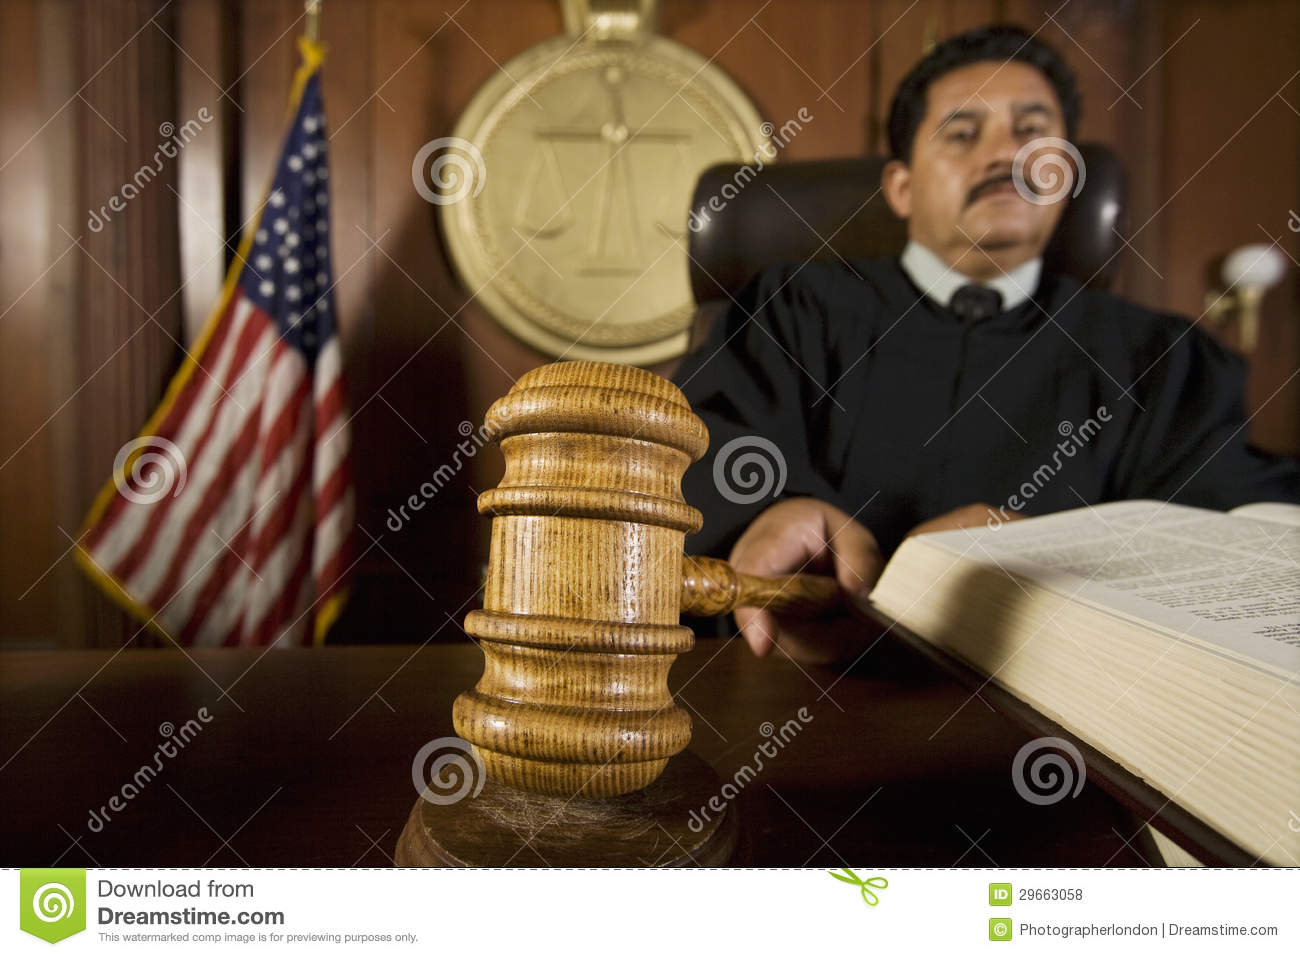 how to talk with judge in court